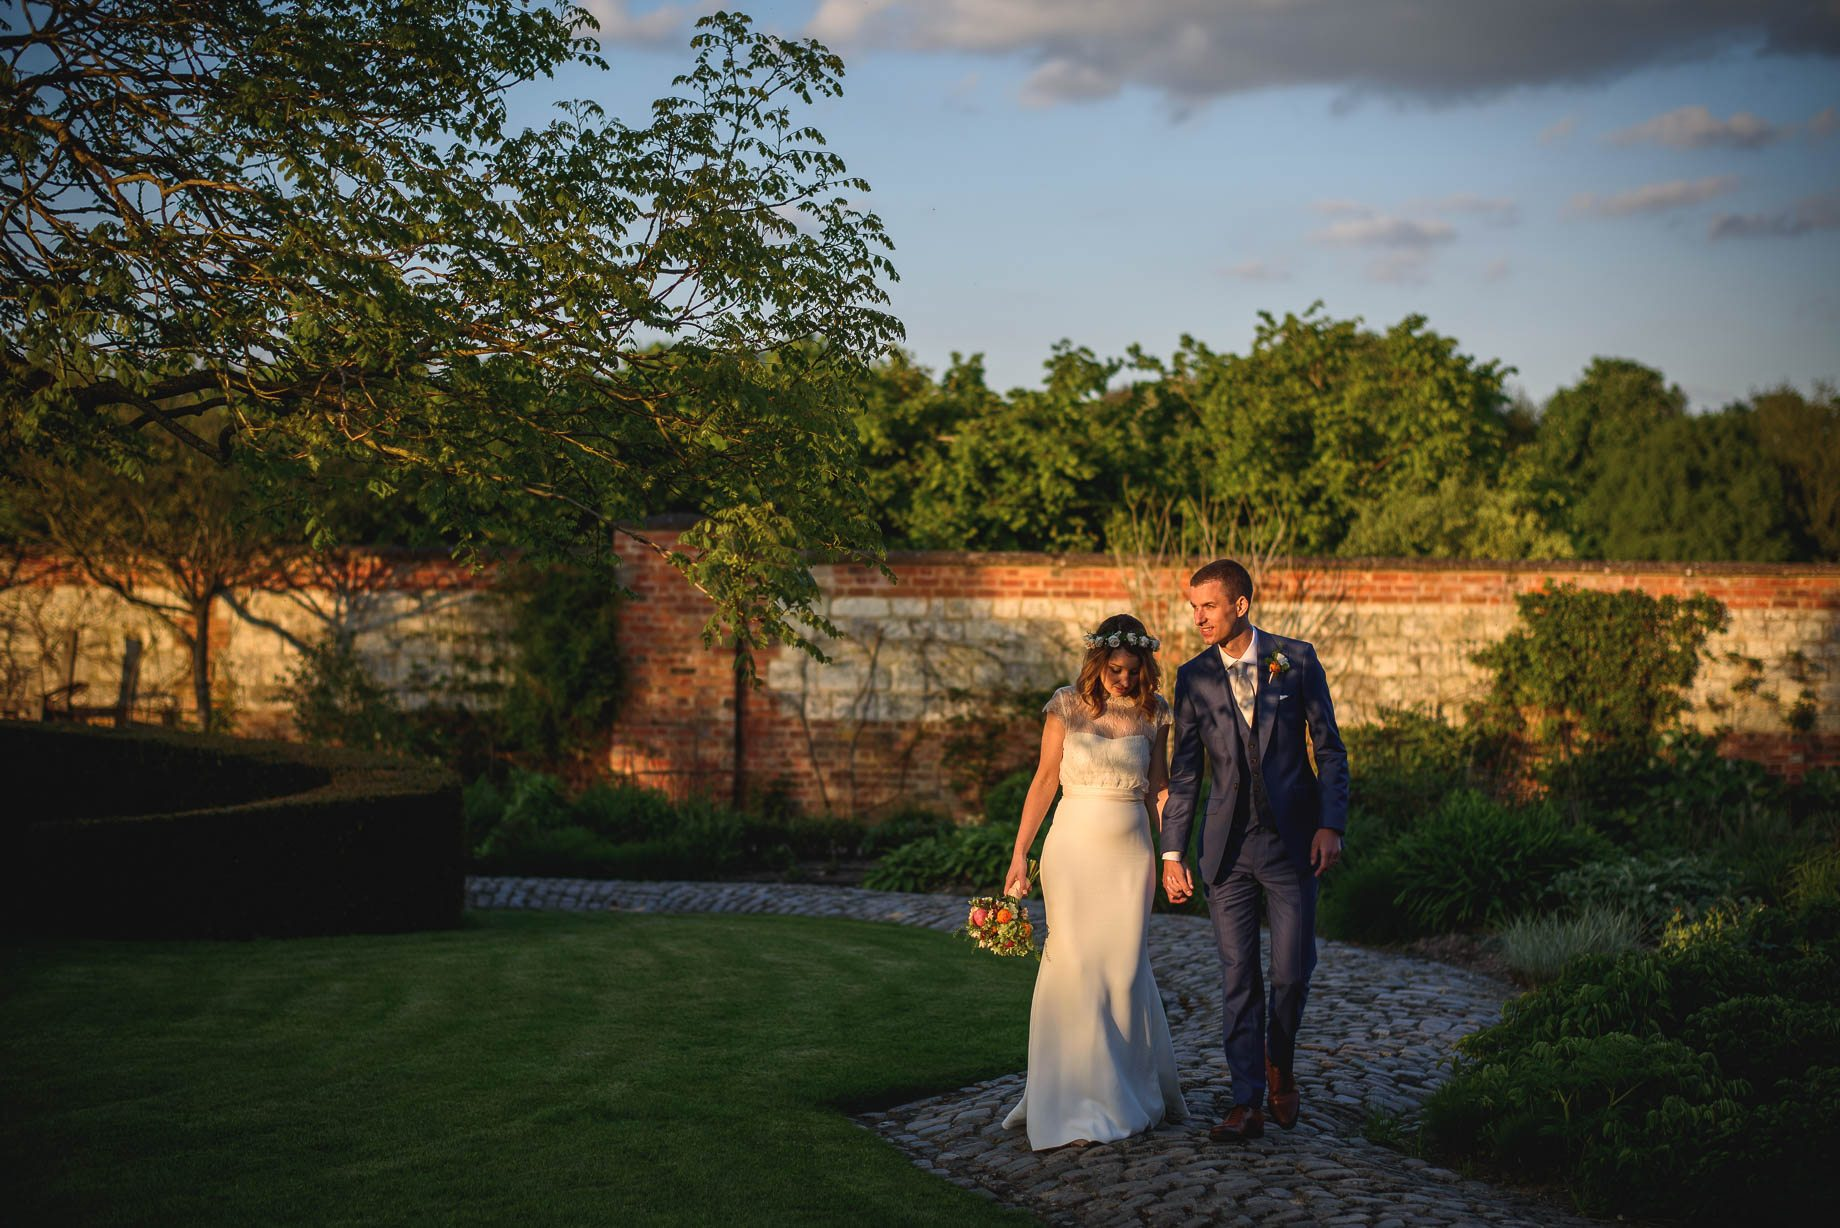 Bury Court Barn wedding photography by Guy Collier - Jo and Jamie (149 of 160)